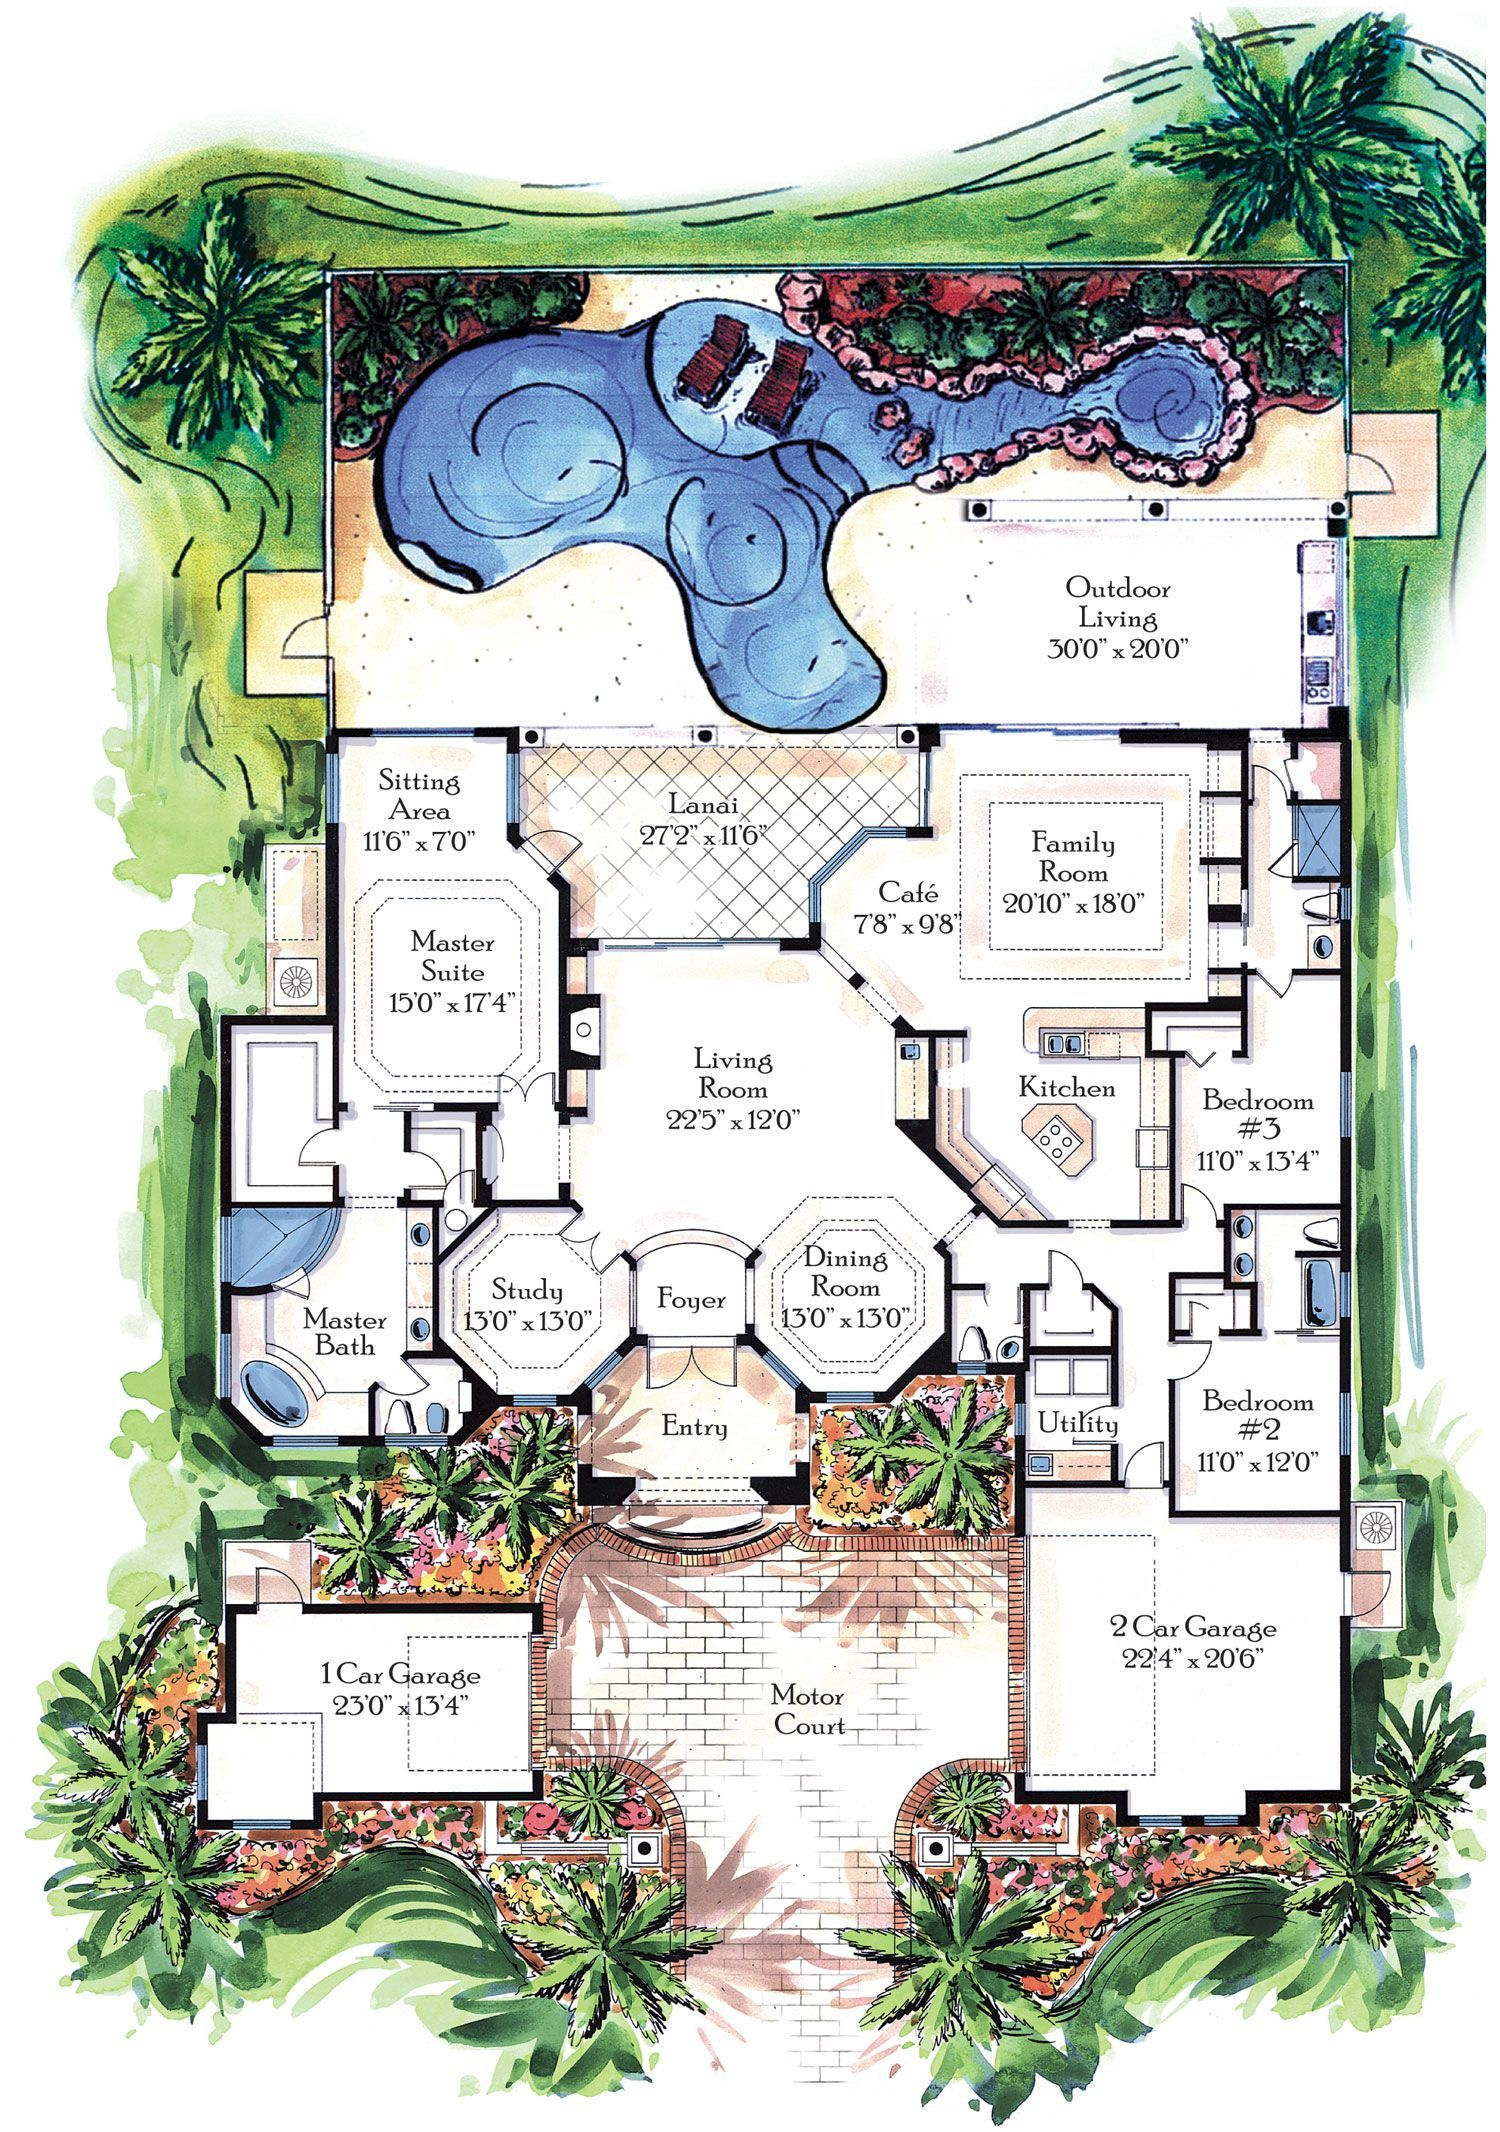 Luxury House Plans Luxuryhouseplans Luxury House Designs House Plans With Photos Luxury House Plans